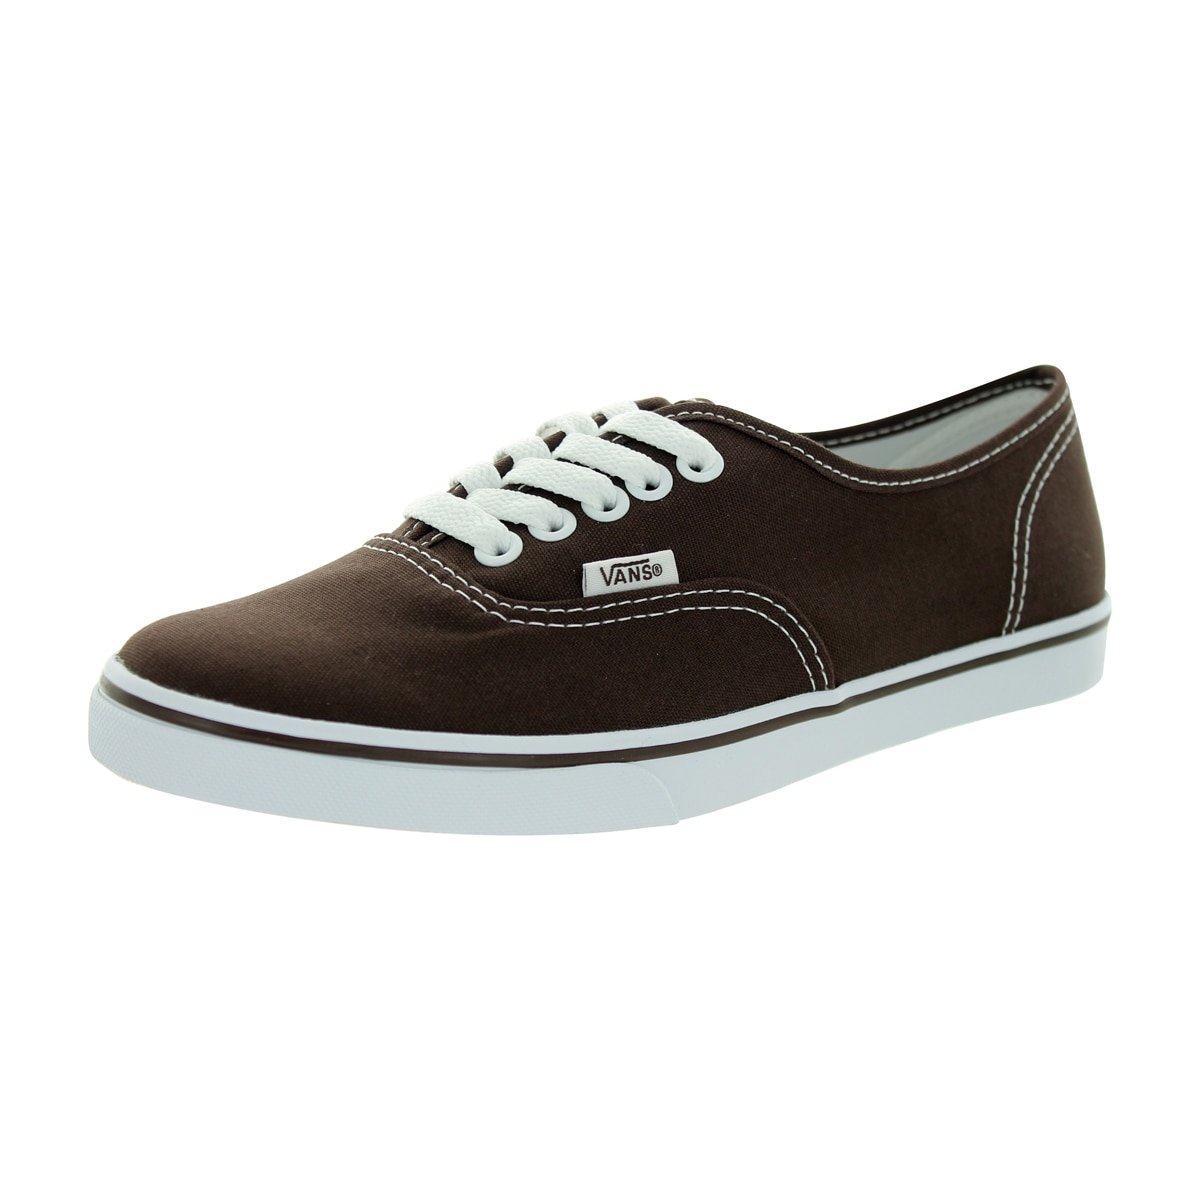 Shop Vans Men s Authentic Lo Pro Espresso True White Canvas Casual ... e372966e51f